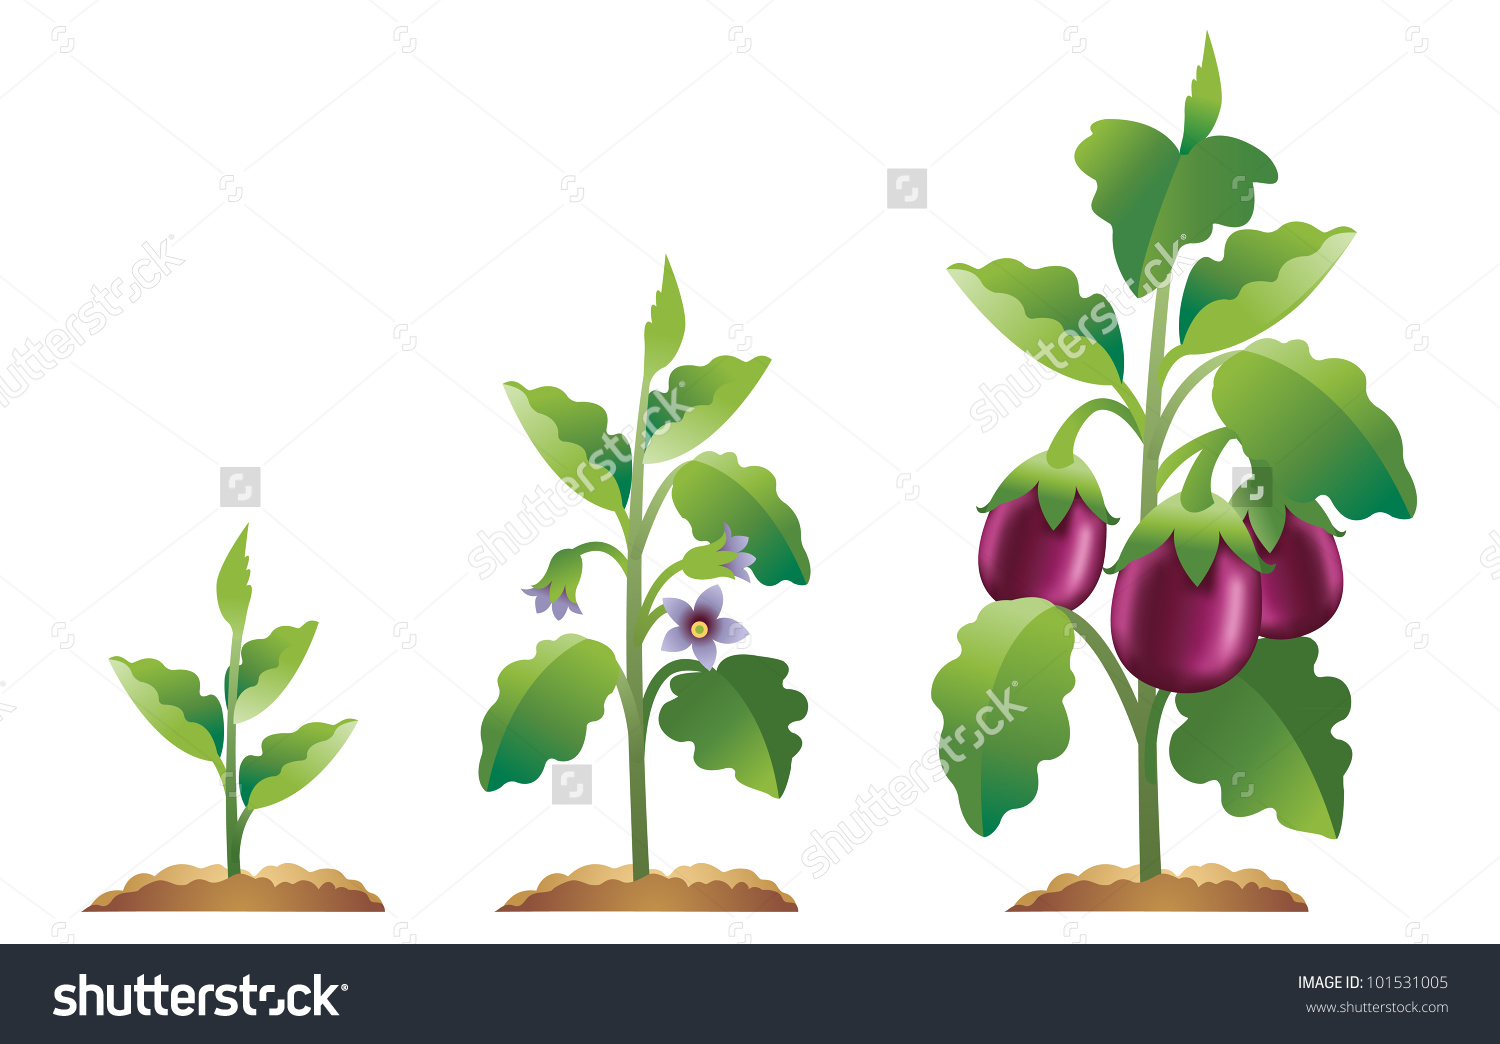 Eggplant clipart vector Plant To Grown From